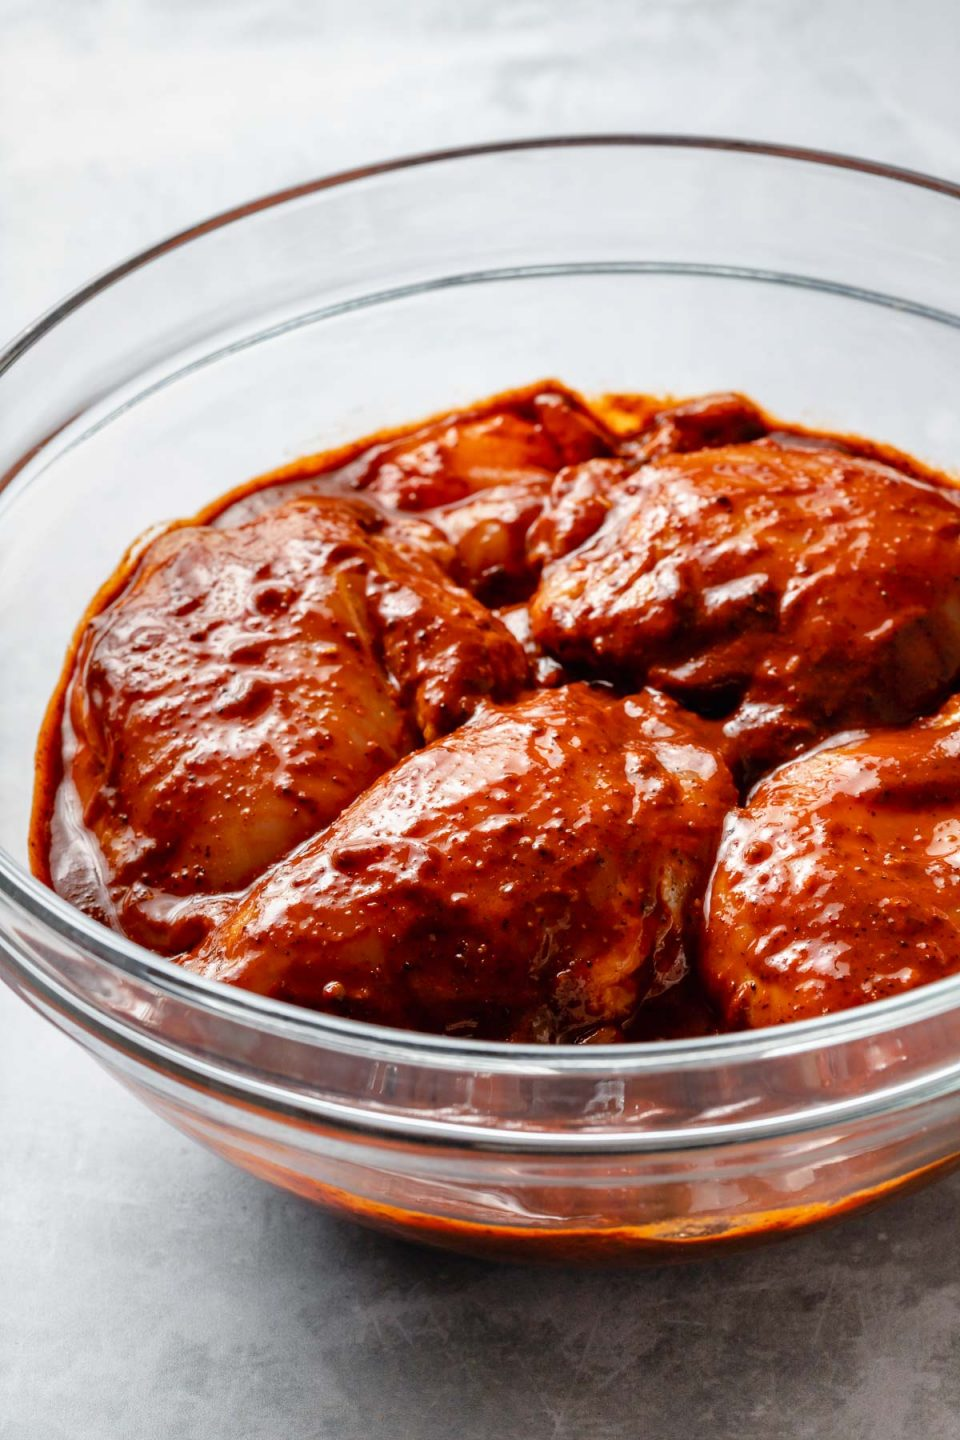 Side angle of chicken thighs in a large glass mixing bowl, marinating in Al Pastor marinade. The bowl sits atop a light blue surface.